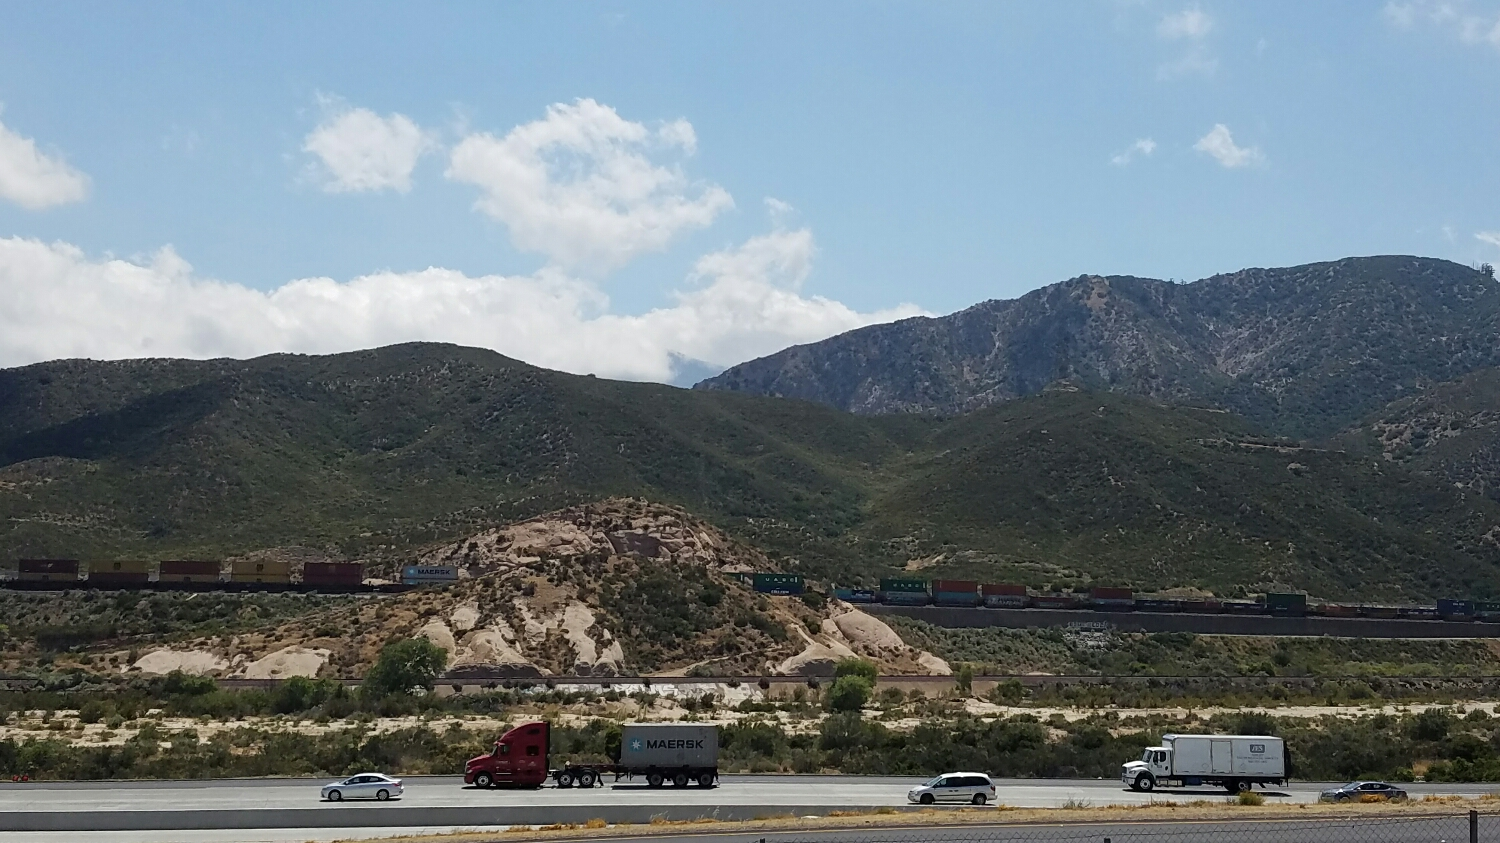 Leaving Cajon Pass, nothing more than a highway exit.